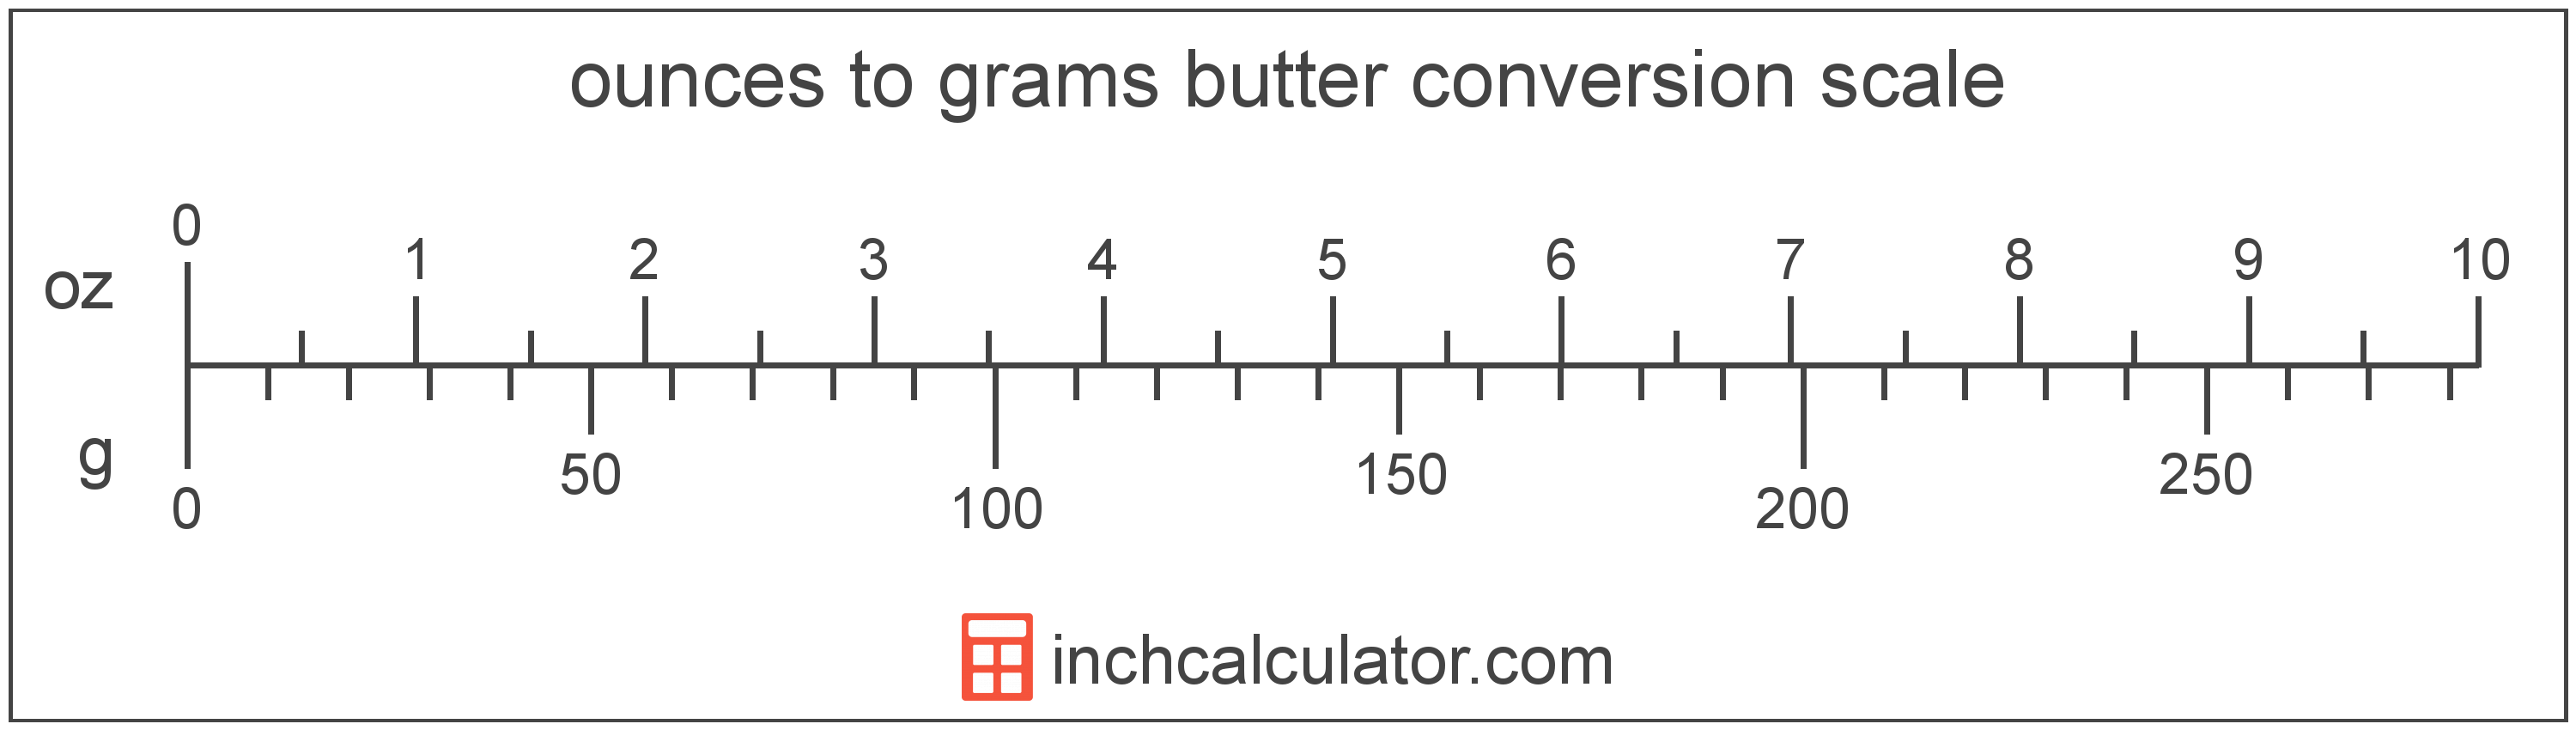 Convert Grams Of Butter To Ounces